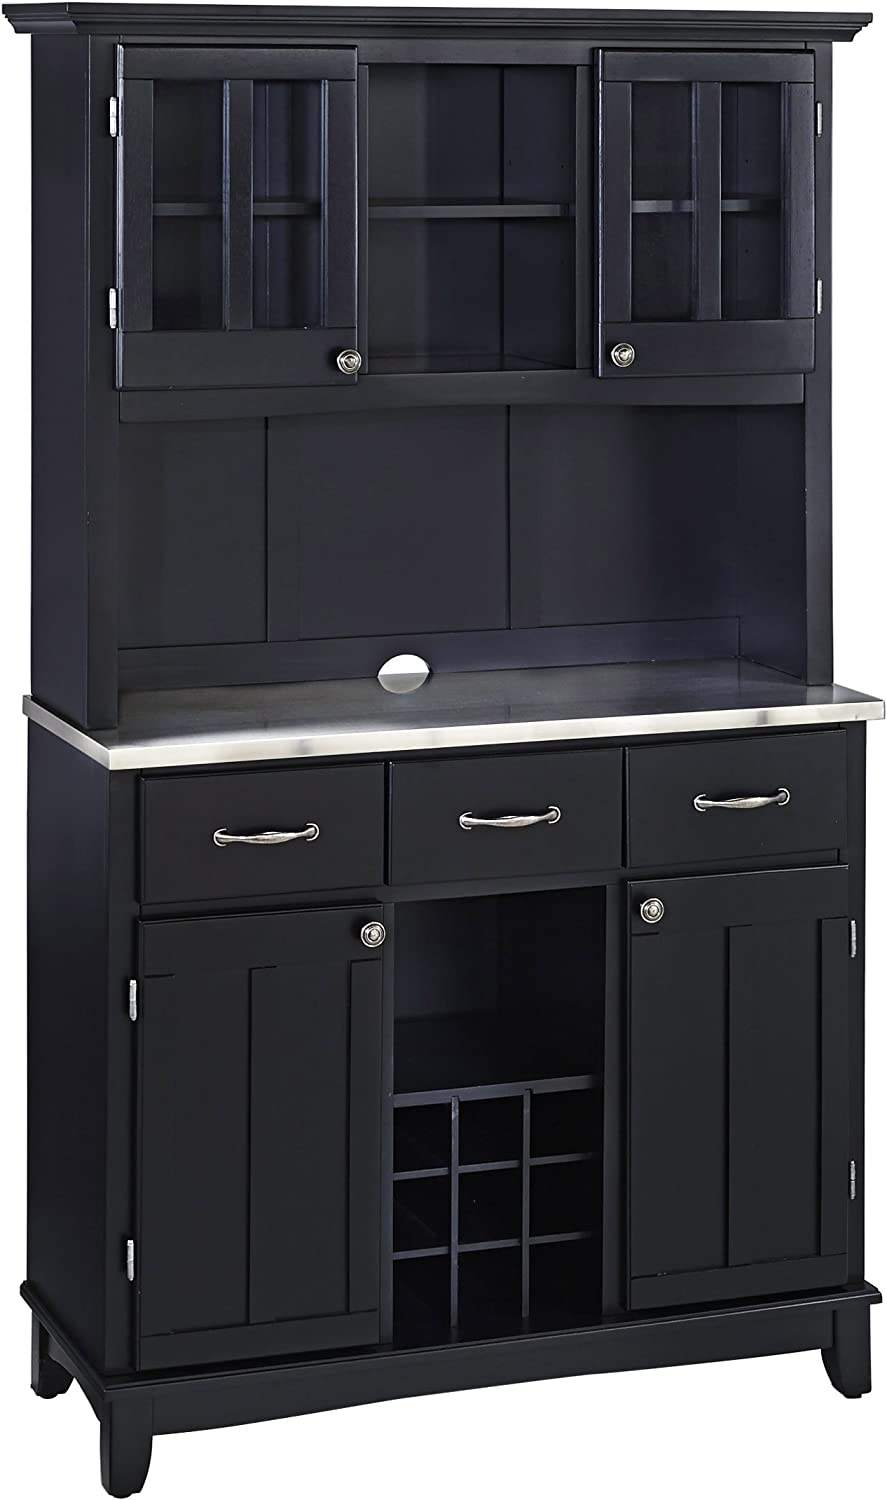 Home Styles Buffet of Buffets Stainless Steel Top Buffet with Hutch, Black Finish, 41-3/4-Inch